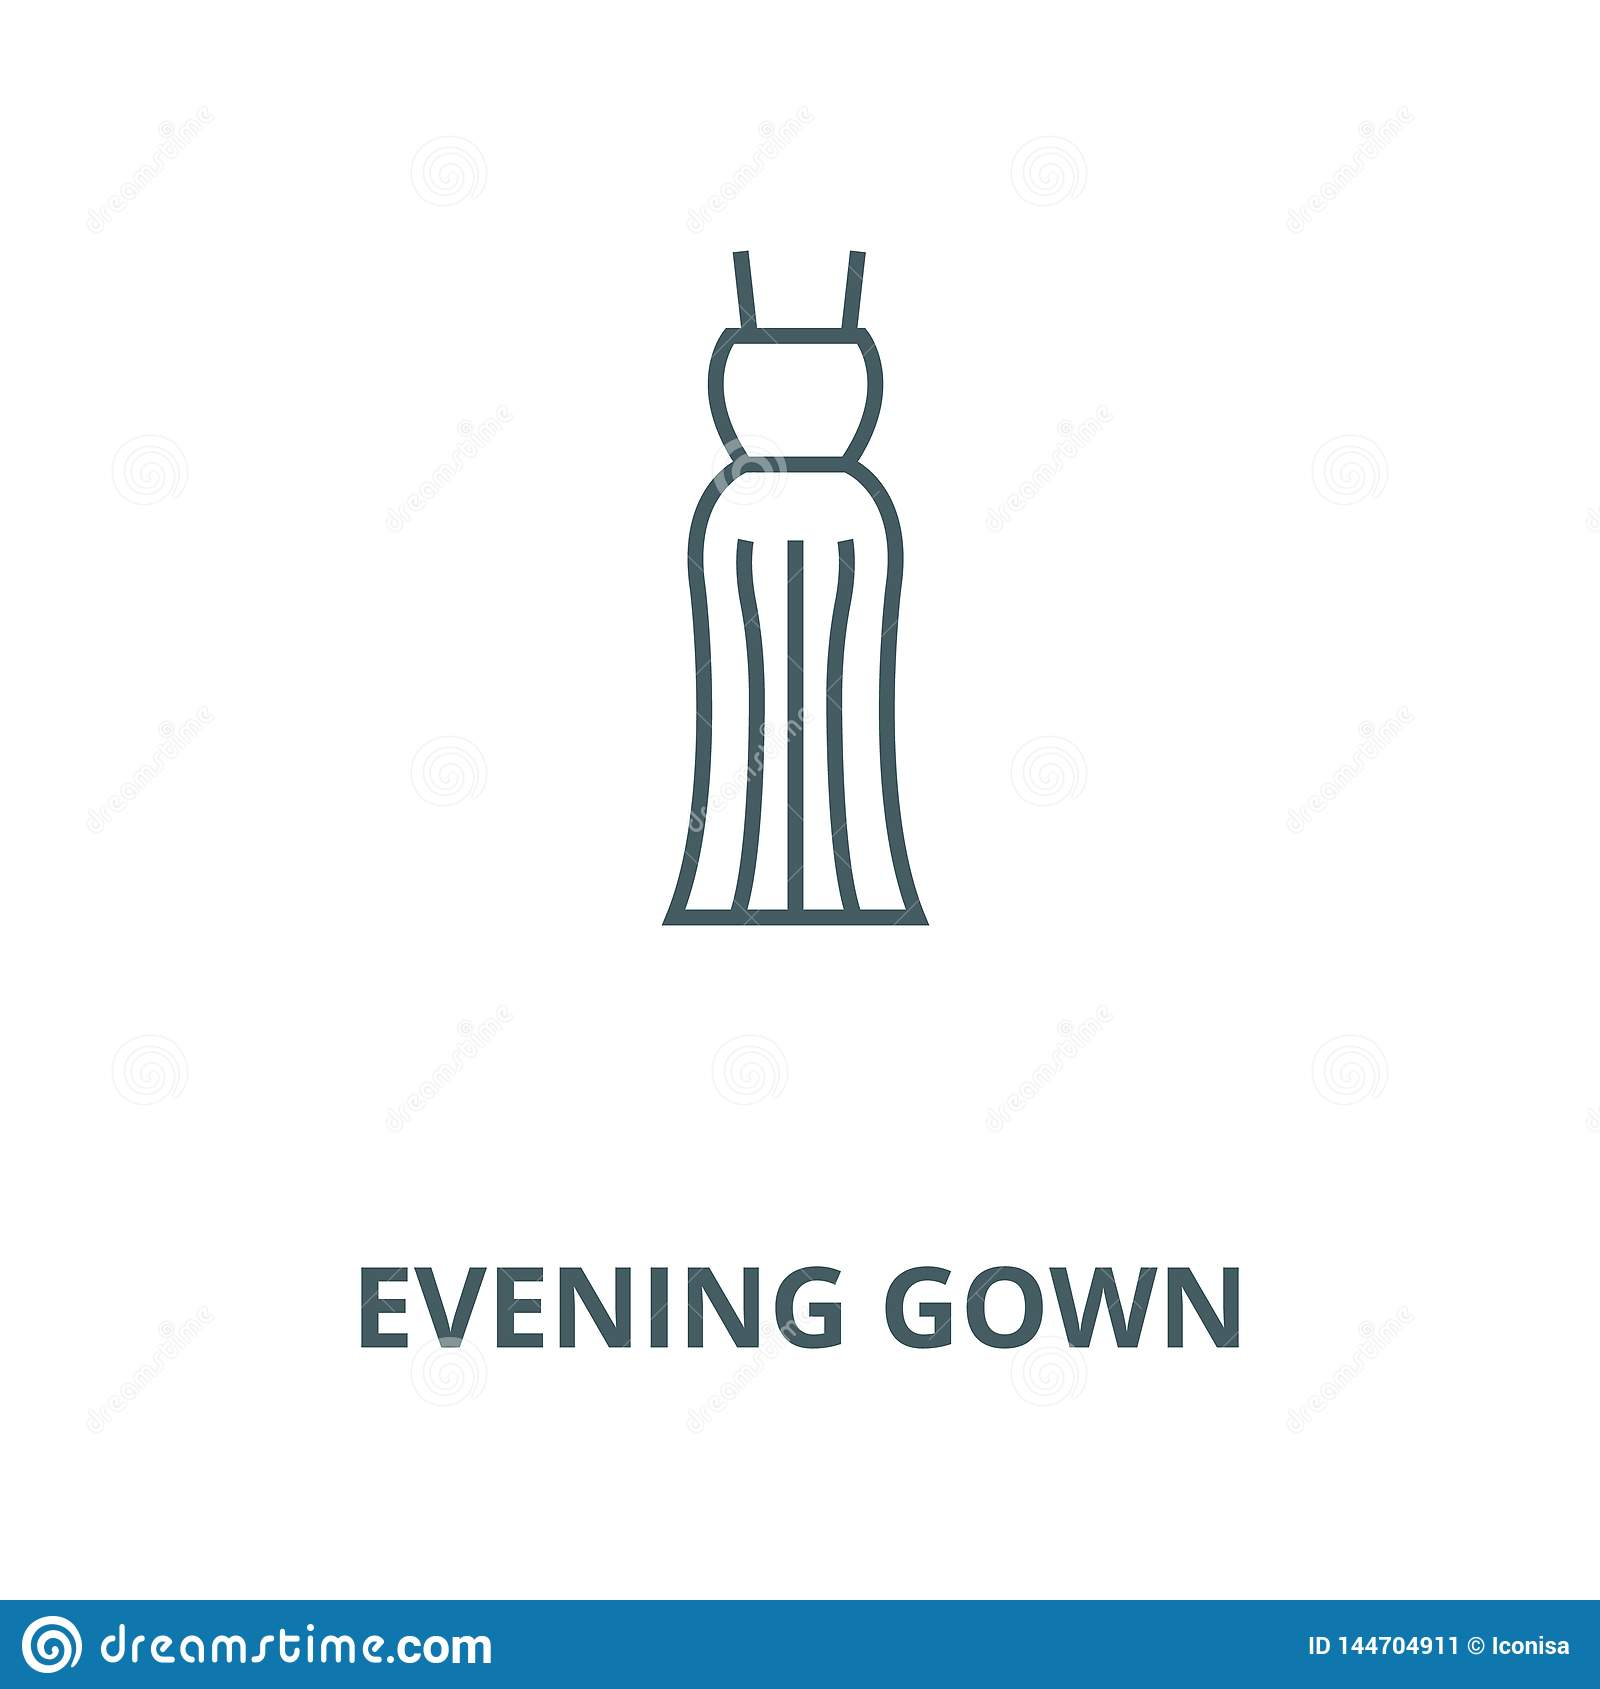 Evening gown line icon, vector. Evening gown outline sign, concept symbol, flat illustration